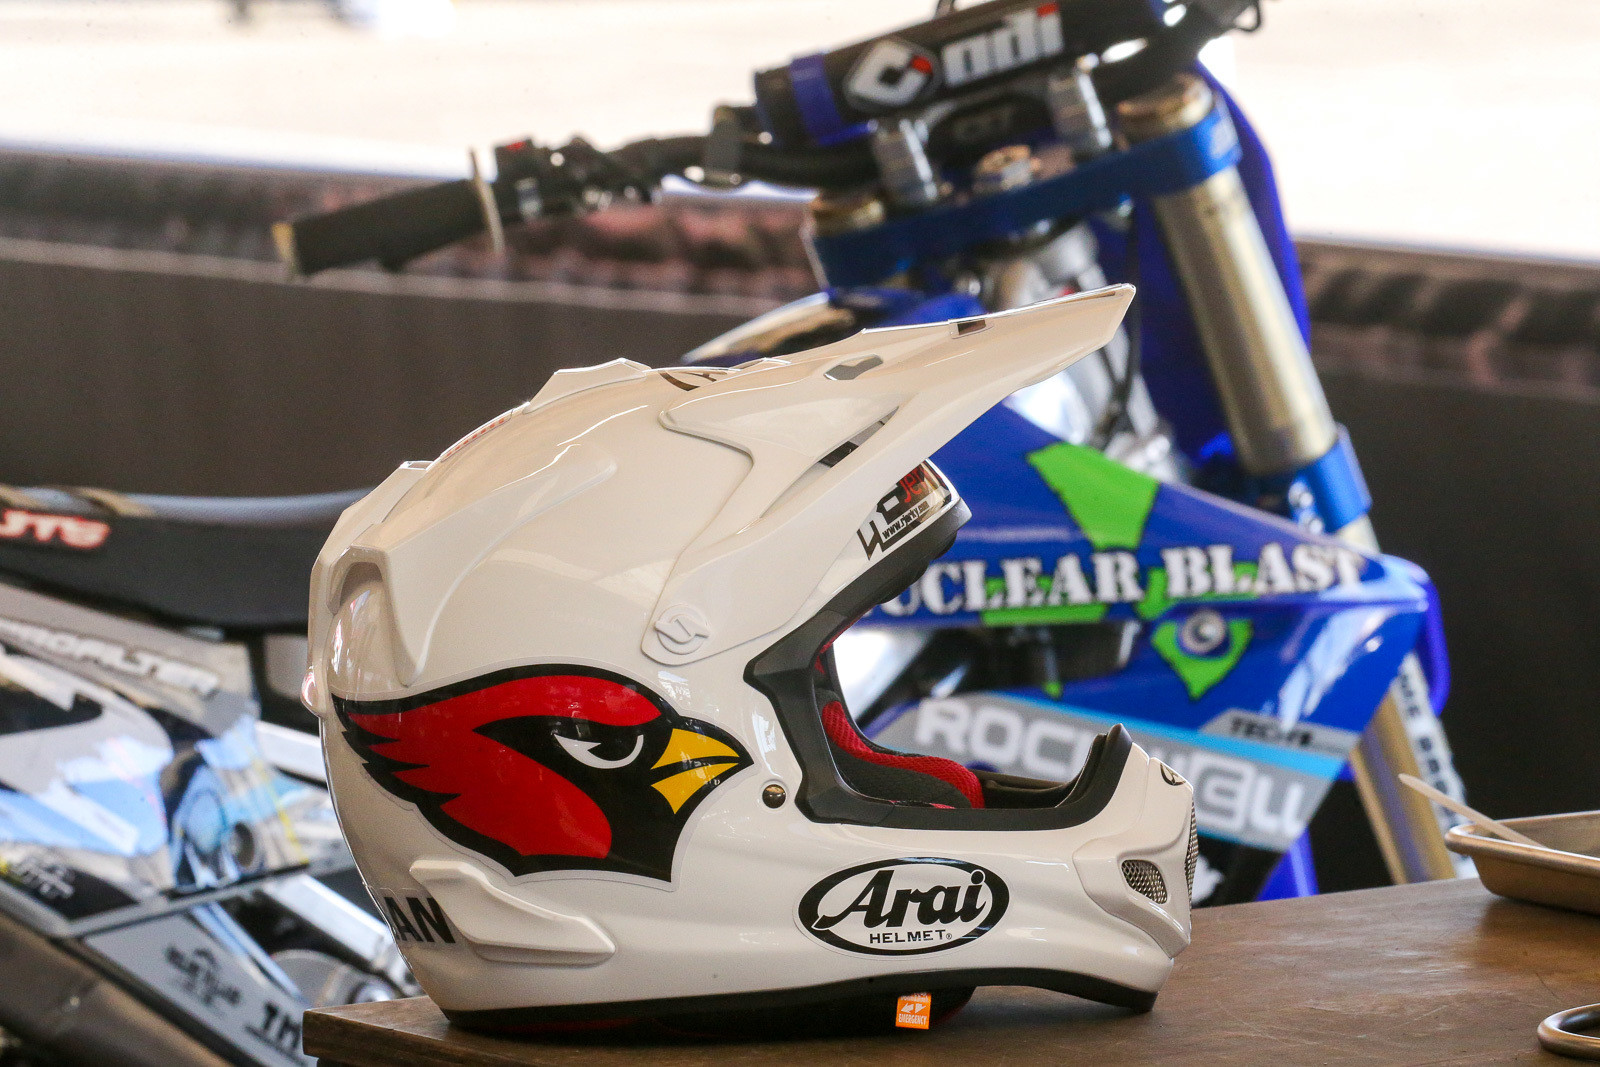 State Farm Stadium in Glendale hosts the NFL's Arizona Cardinals during the non-Supercross season. Robbie Wageman and the Nuclear Blast/Rockwell/Yamaha team made sure to take note of that.